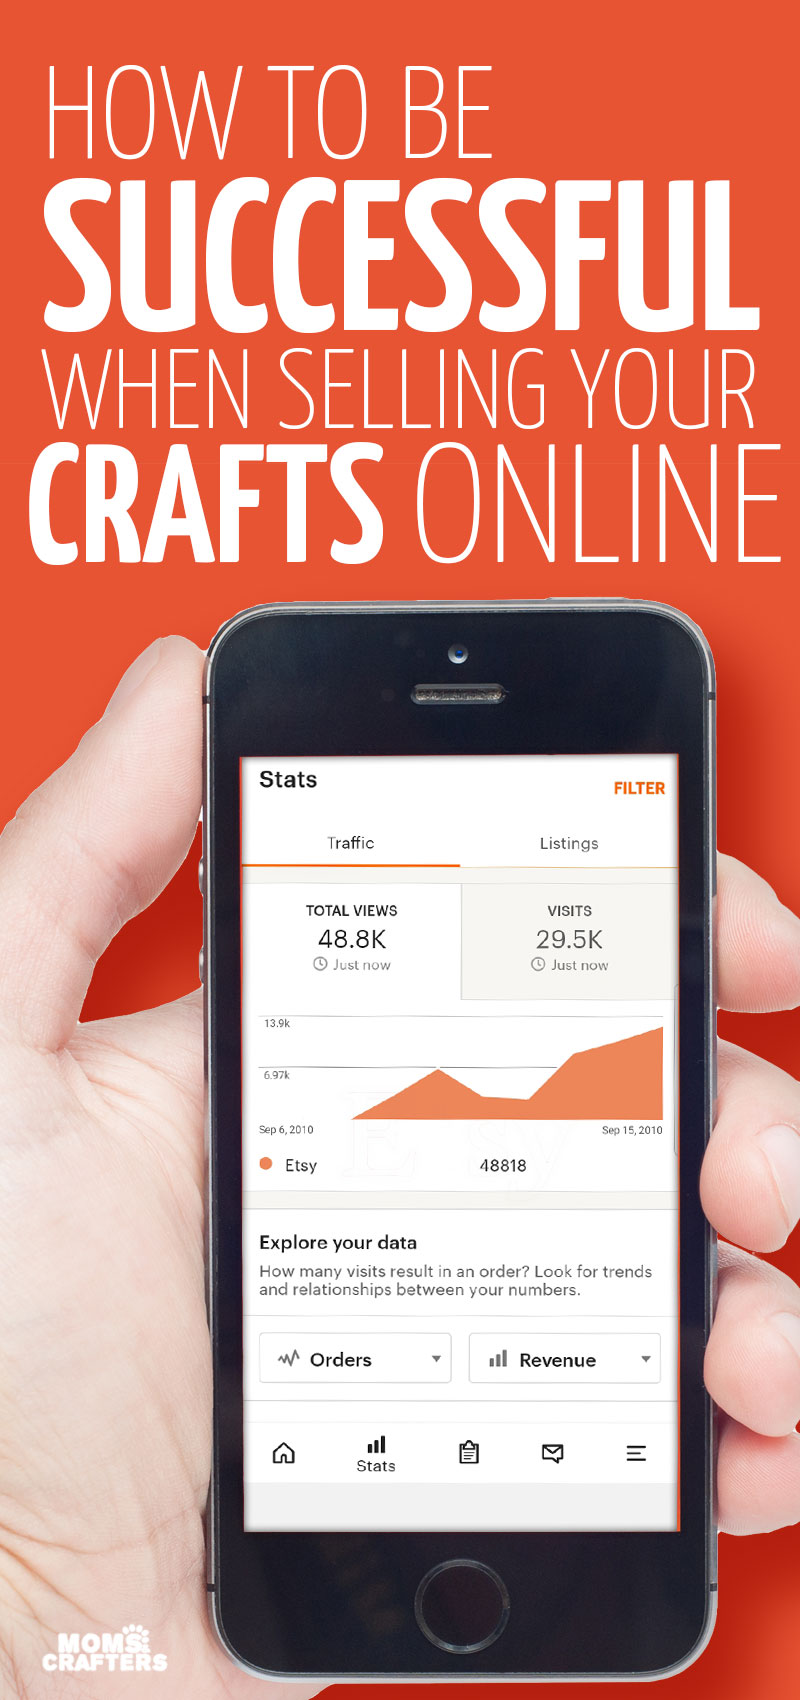 Click for some top tips for selling crafts online and tips for successfully selling on Etsy.